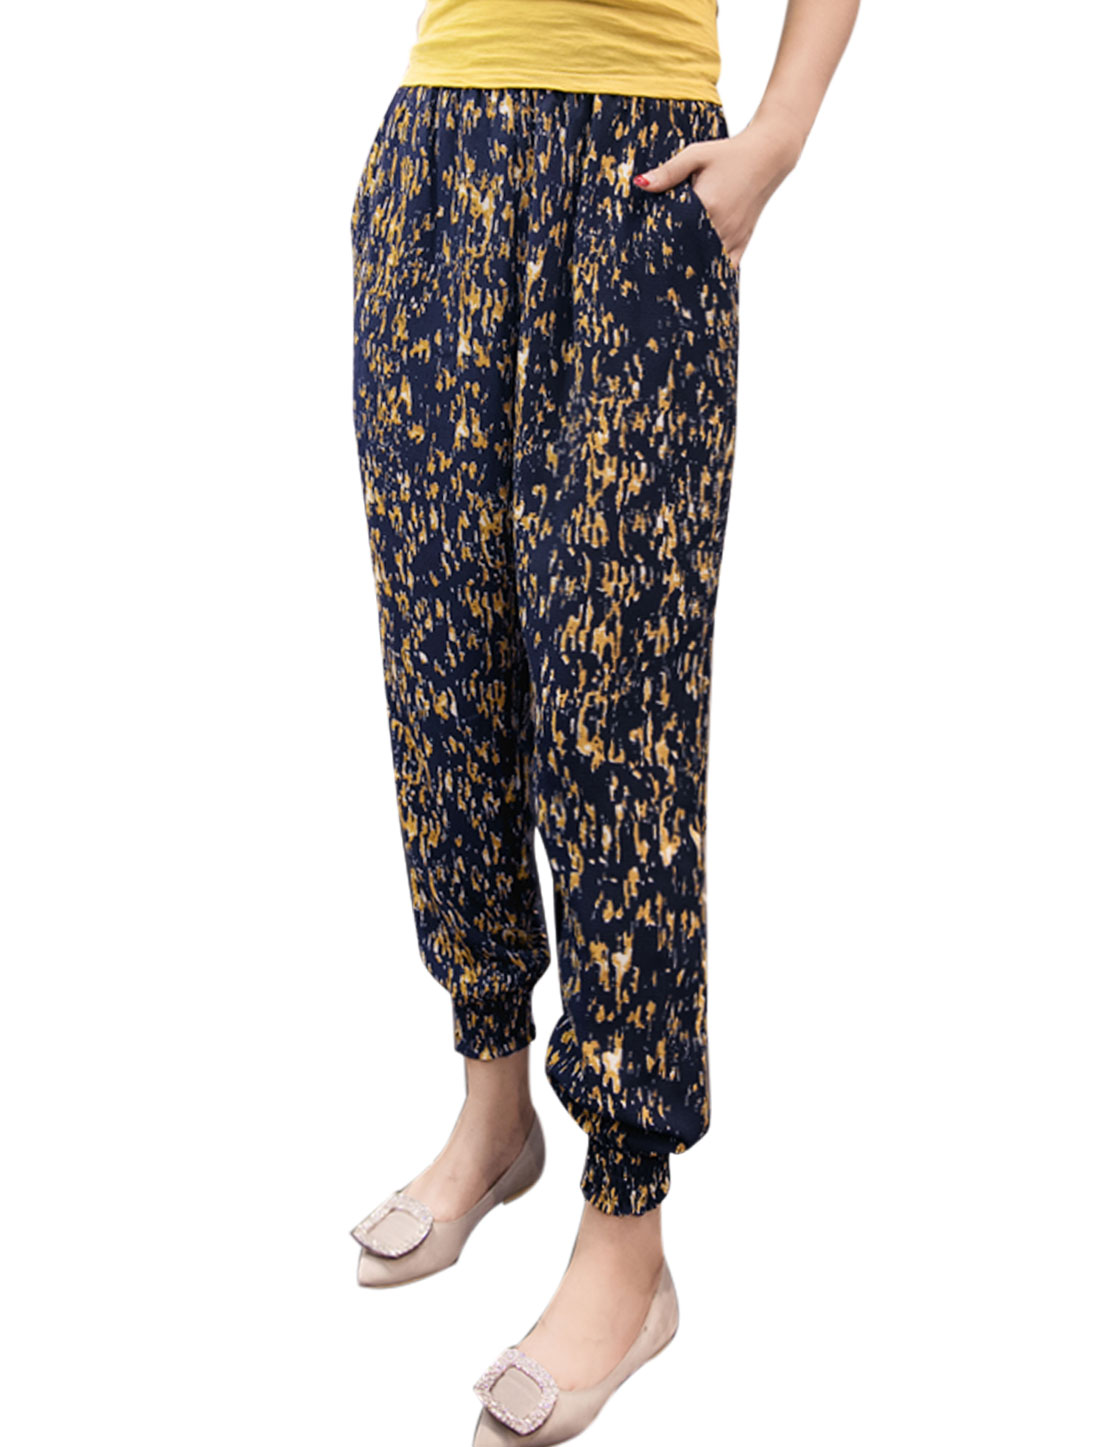 Women Elastic Waist Novelty Prints Tapered Cropped Pants Yellow M